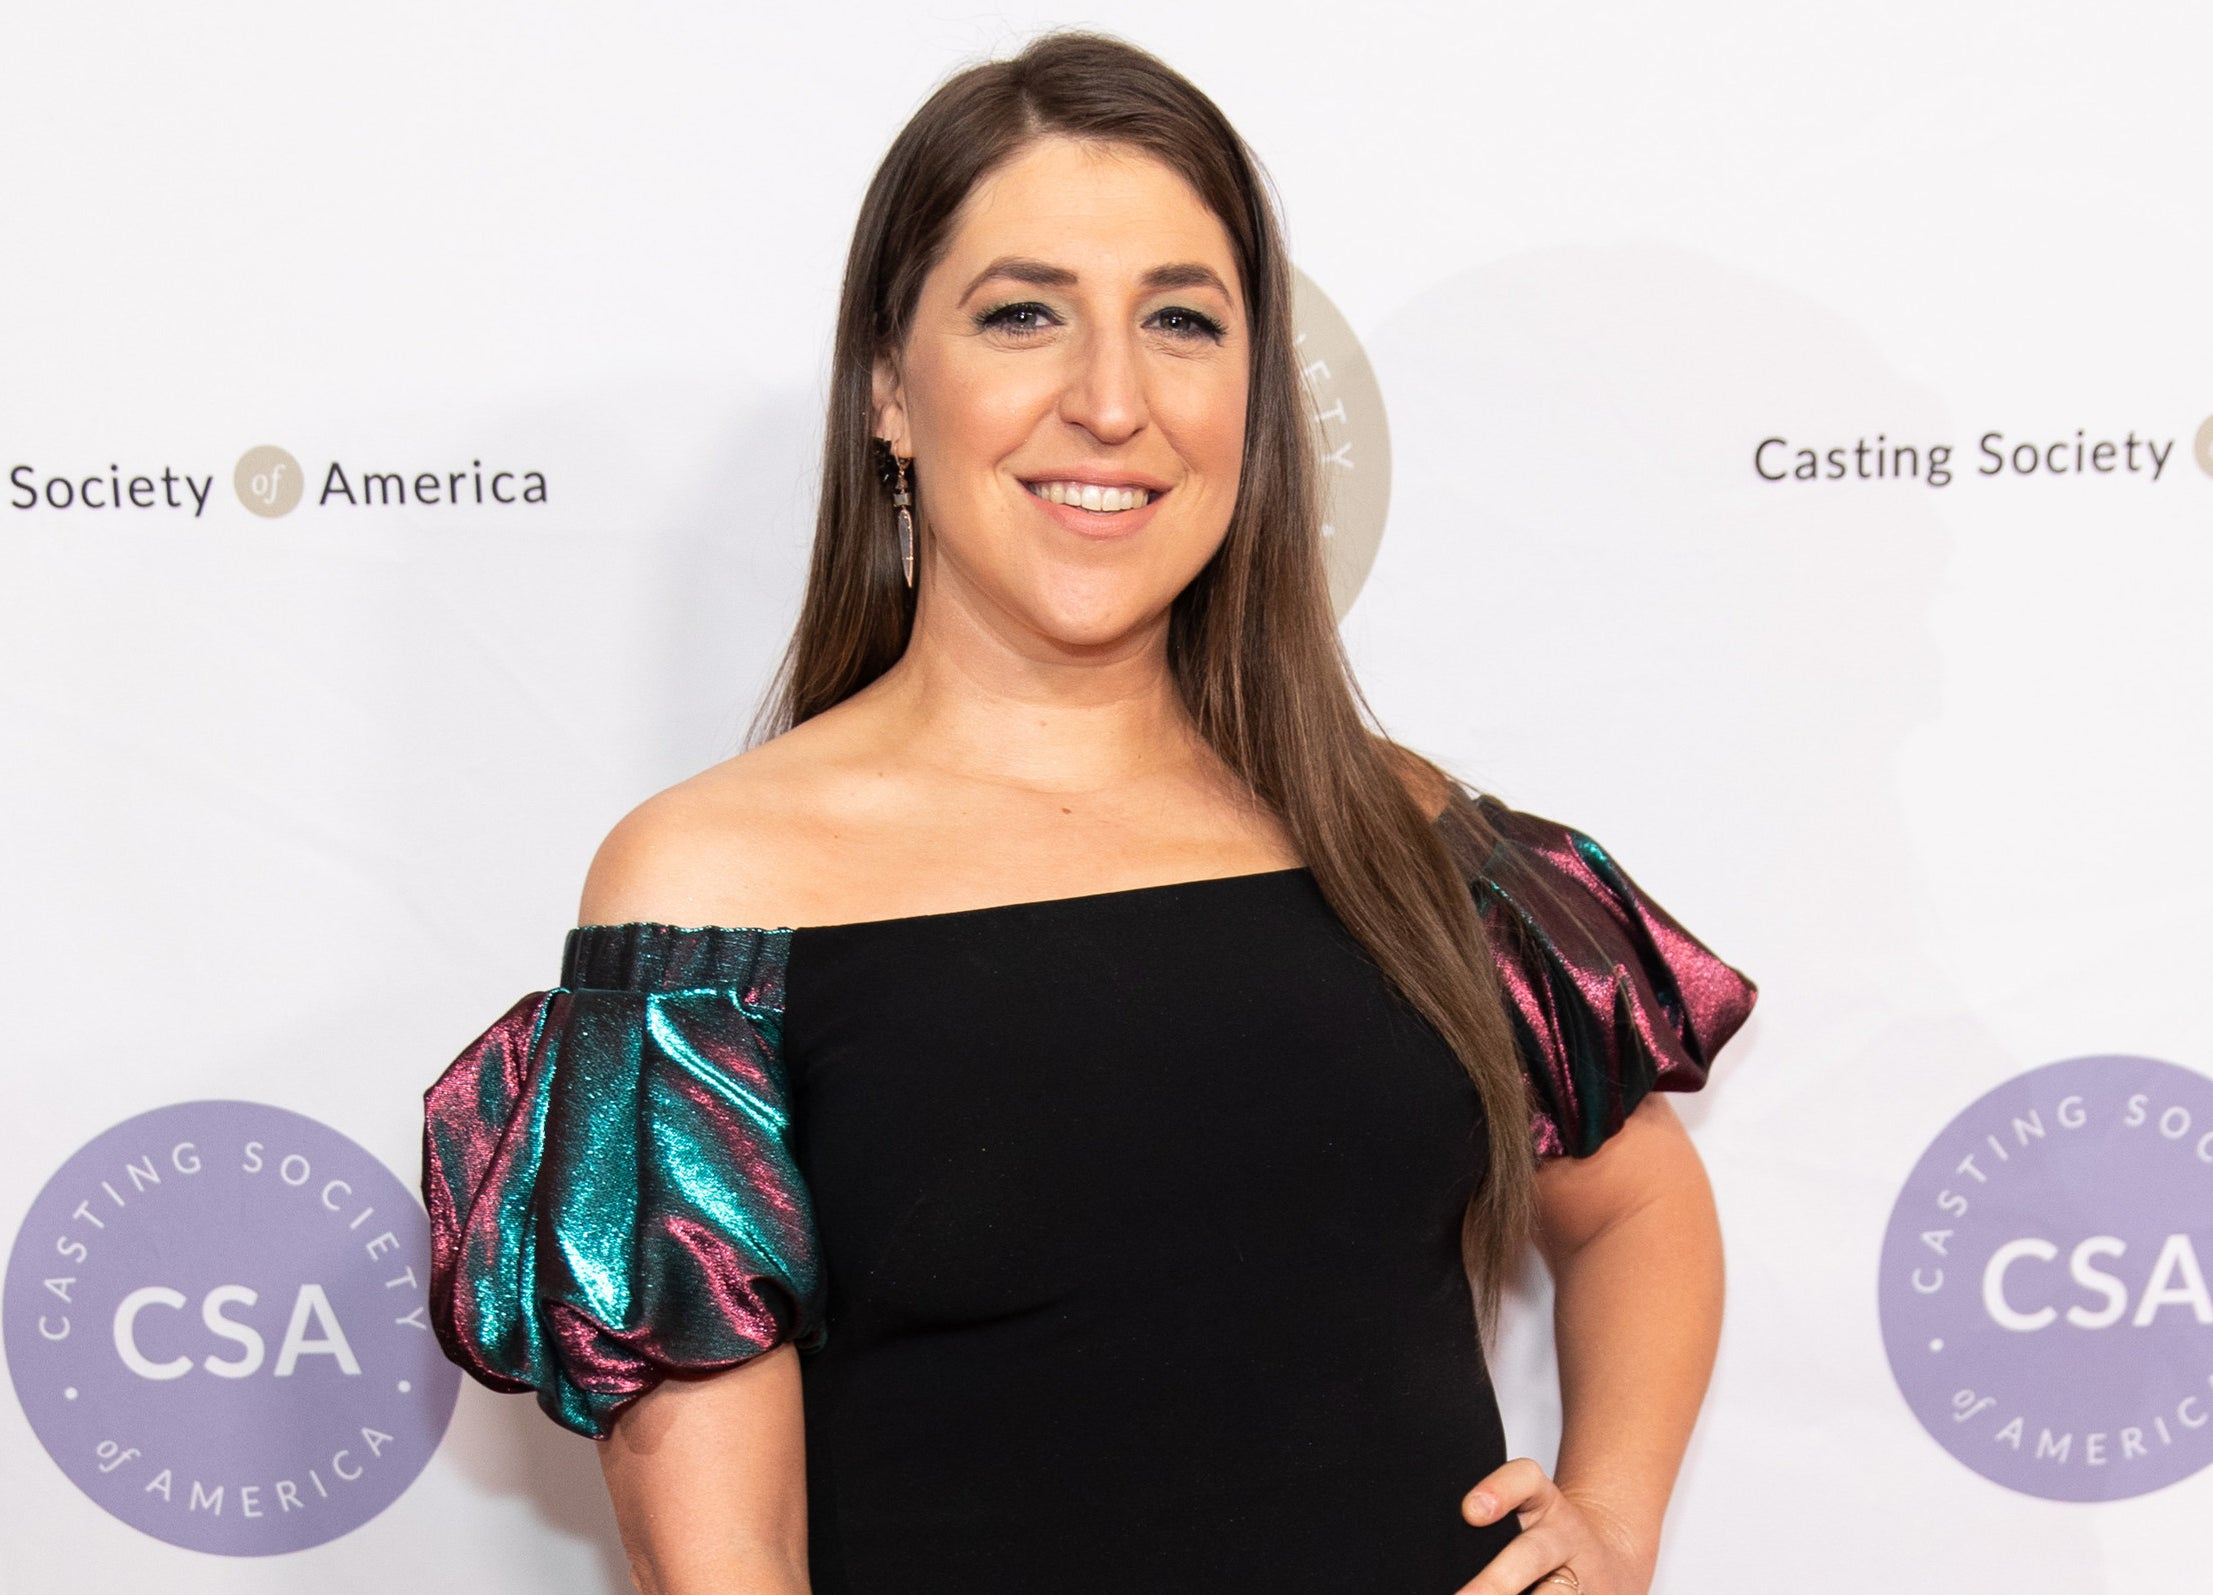 Mayim smiles while wearing an off the shoulder dress at an event